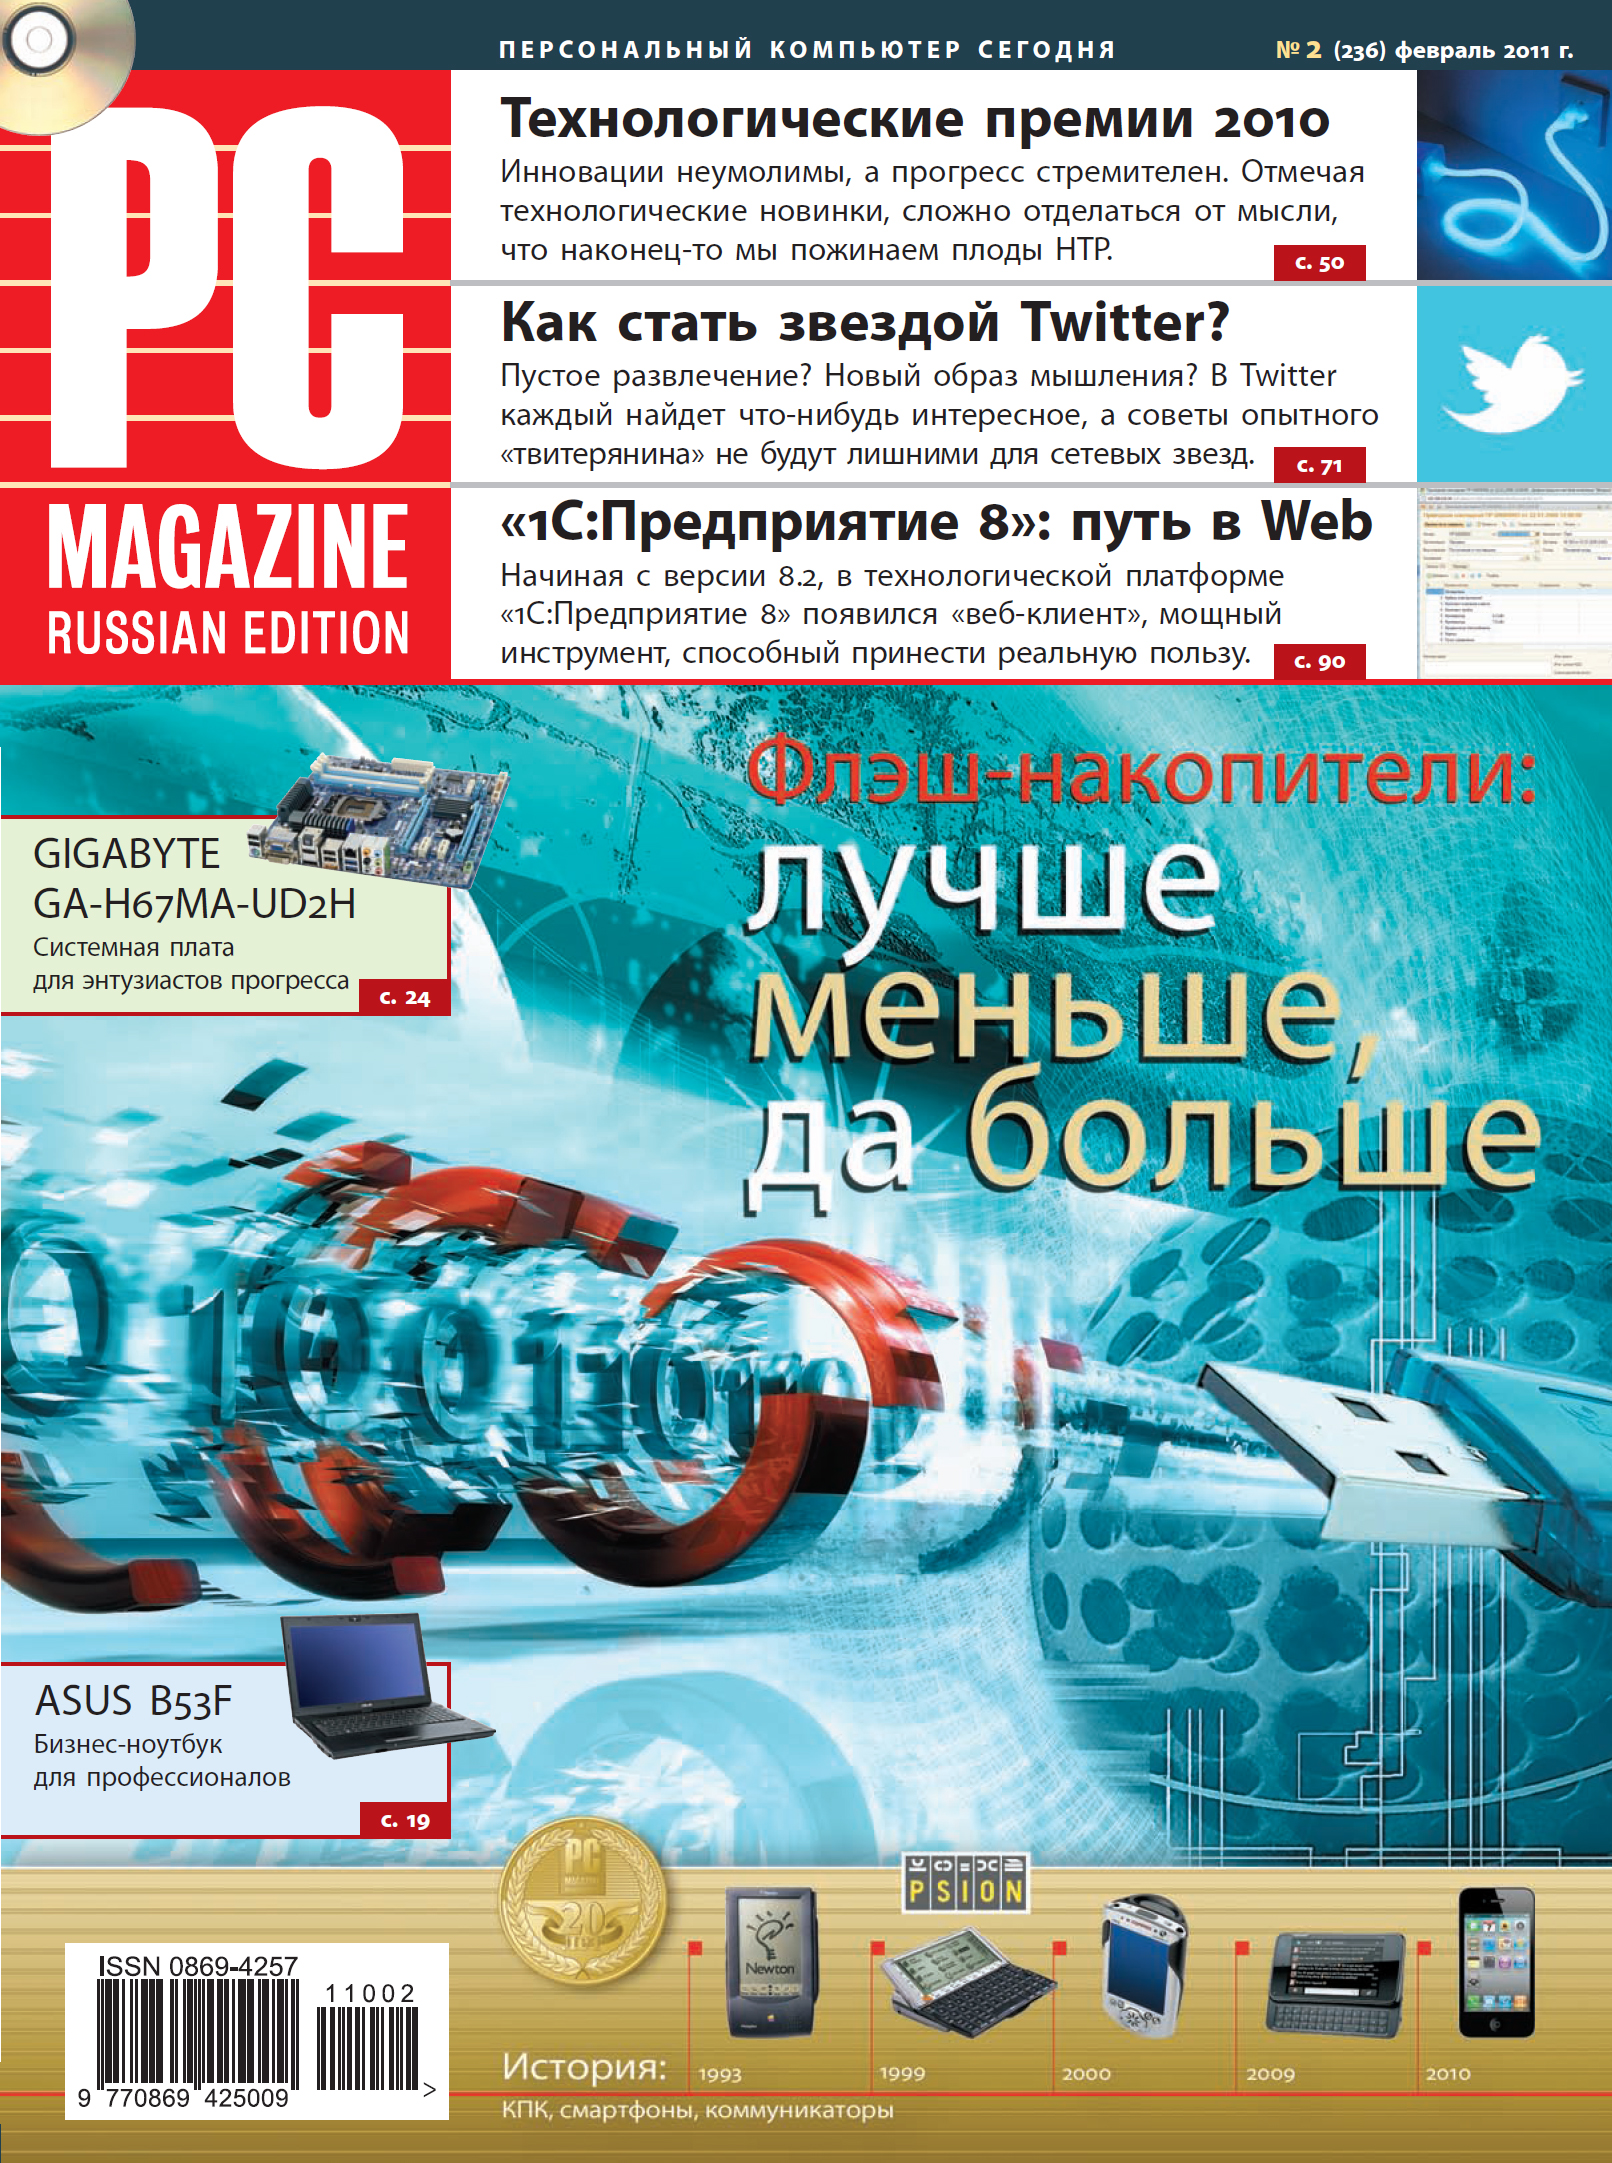 PC Magazine/RE Журнал PC Magazine/RE №2/2011 компьютер